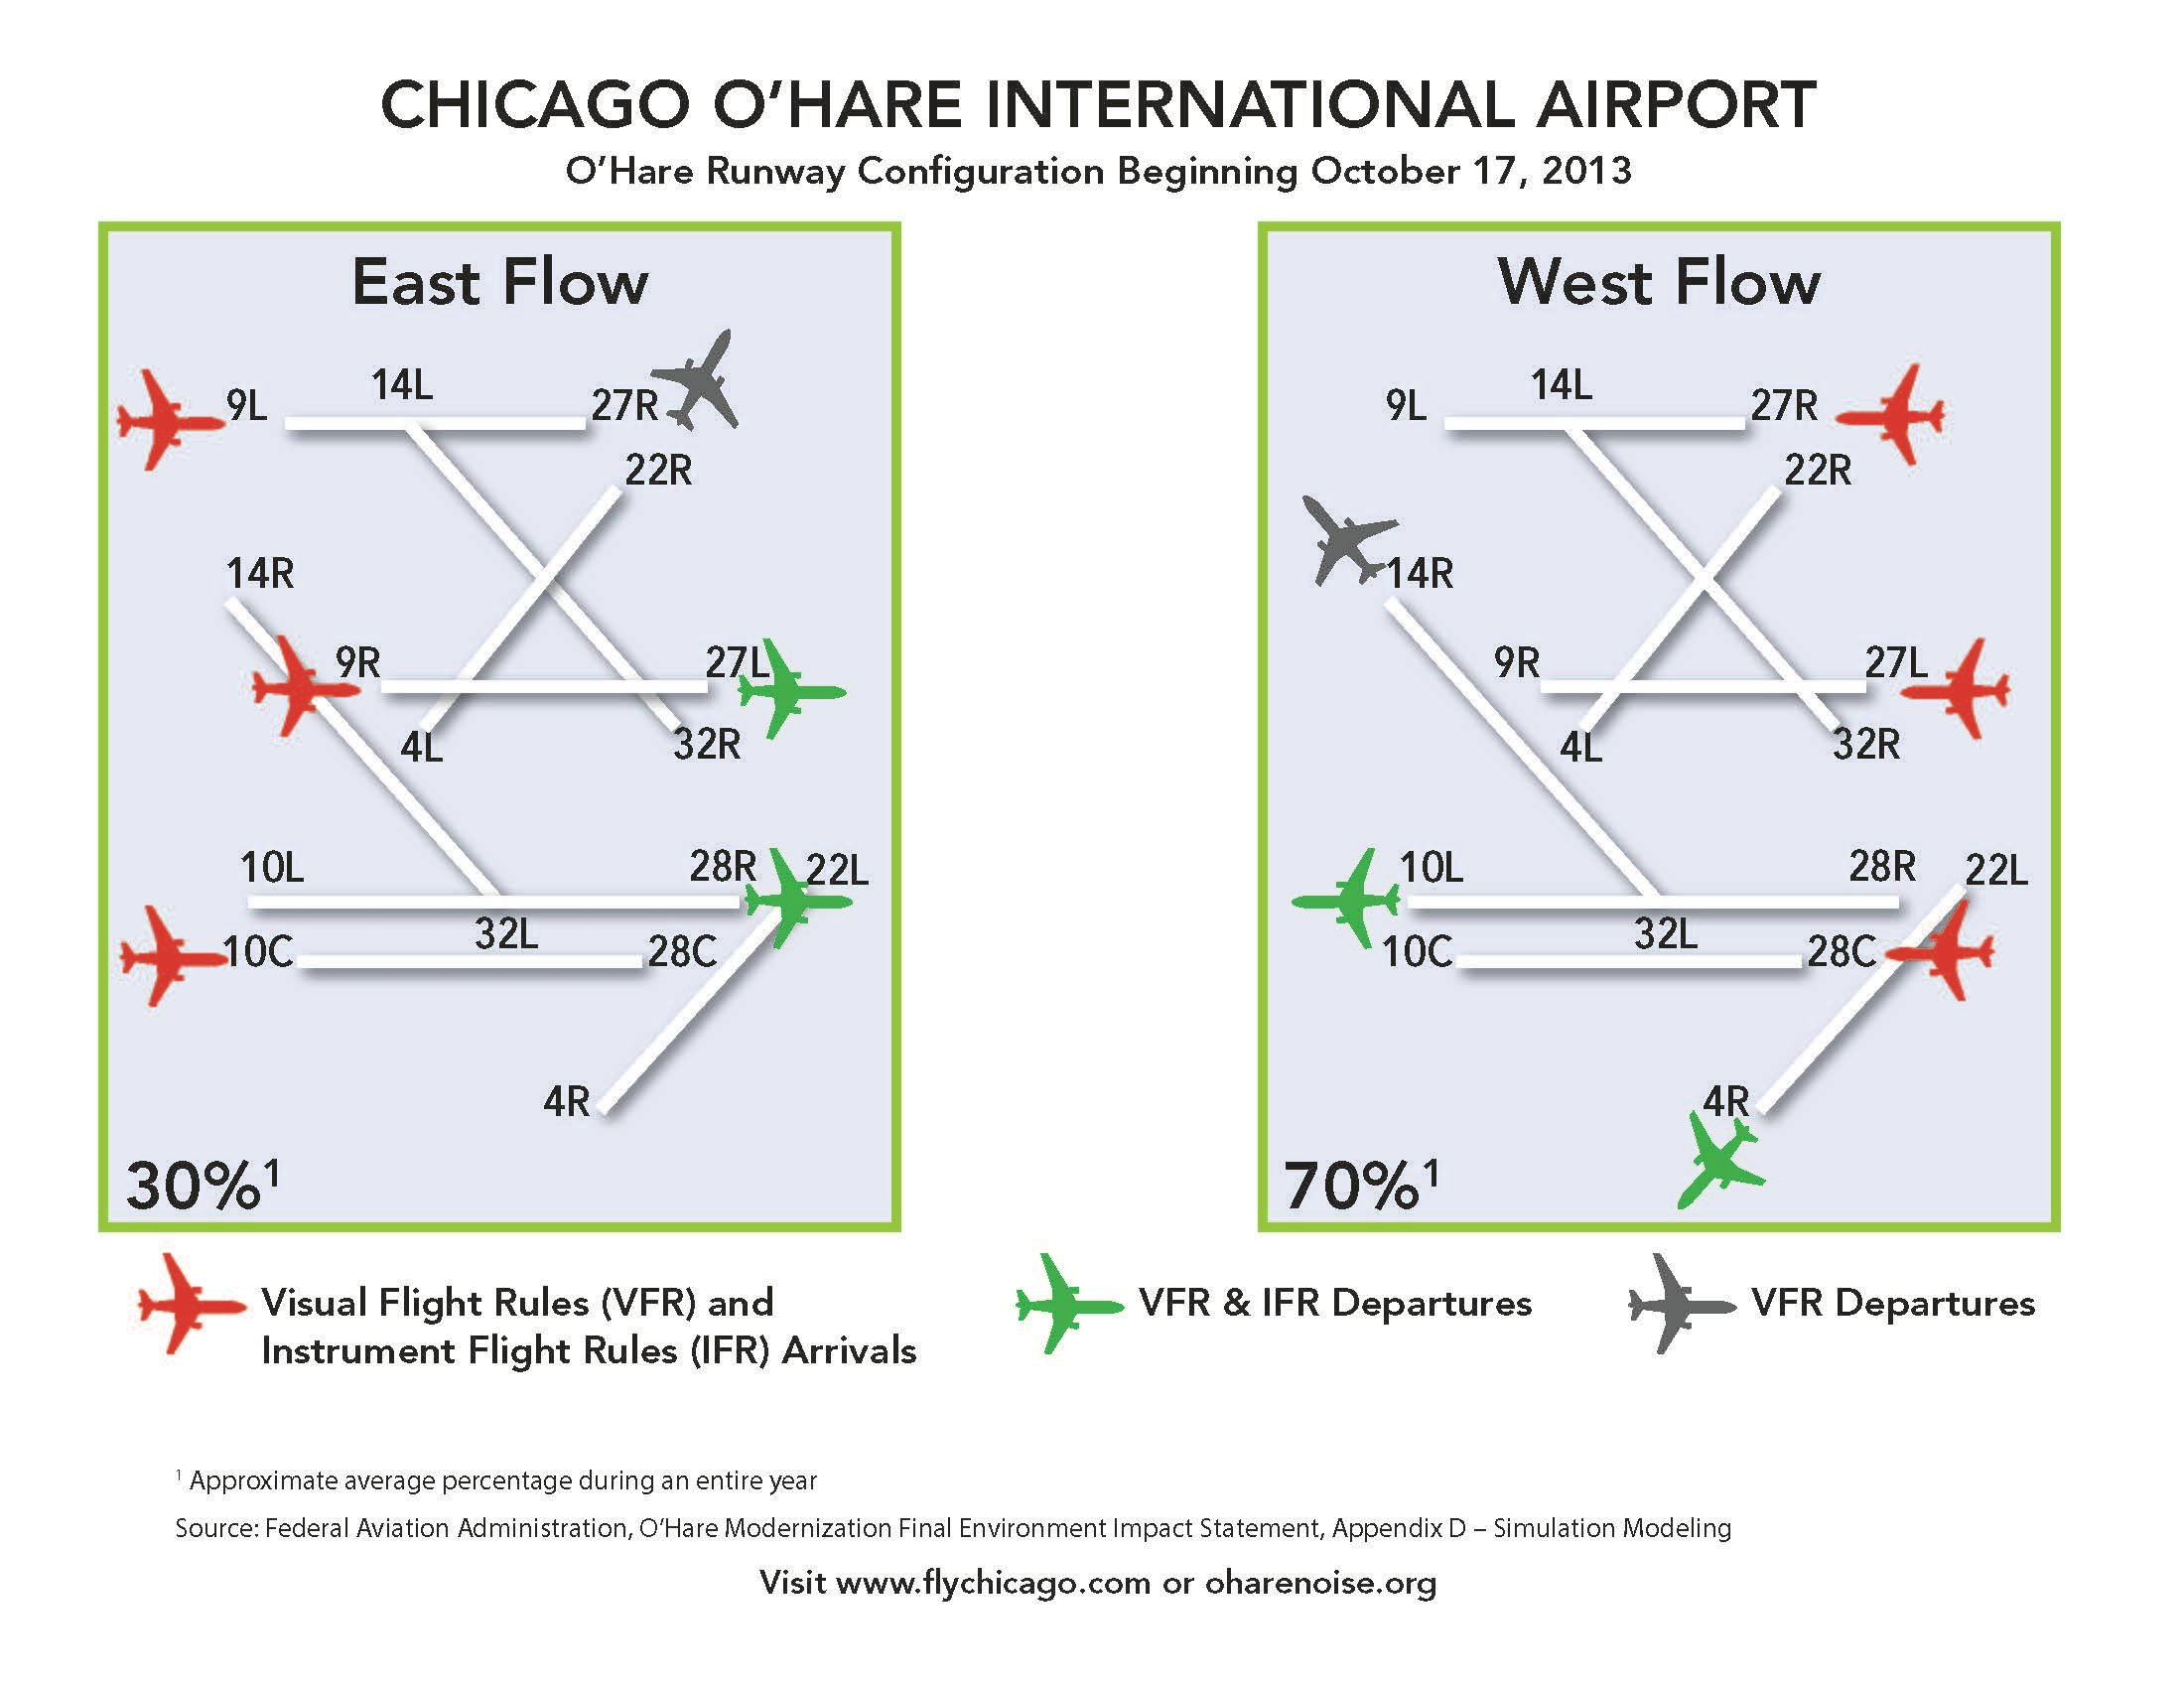 Complaints About O'Hare Noise | Chicago News | WTTW on o'hare airport map, o'hare restaurant map, o'hare modernization map, o'hare parking map, chicago south lawndale map, o'hare field map, o'hare cargo map, o'hare arrivals map, united airlines o'hare map, o'hare concourse map, o'hare area map, o'hare gate map, chicago regional map with locations, hyatt o'hare map, elgin o'hare map, official o'hare map, o'hare bus shuttle center map, o'hare blue line map, chicago airport map,